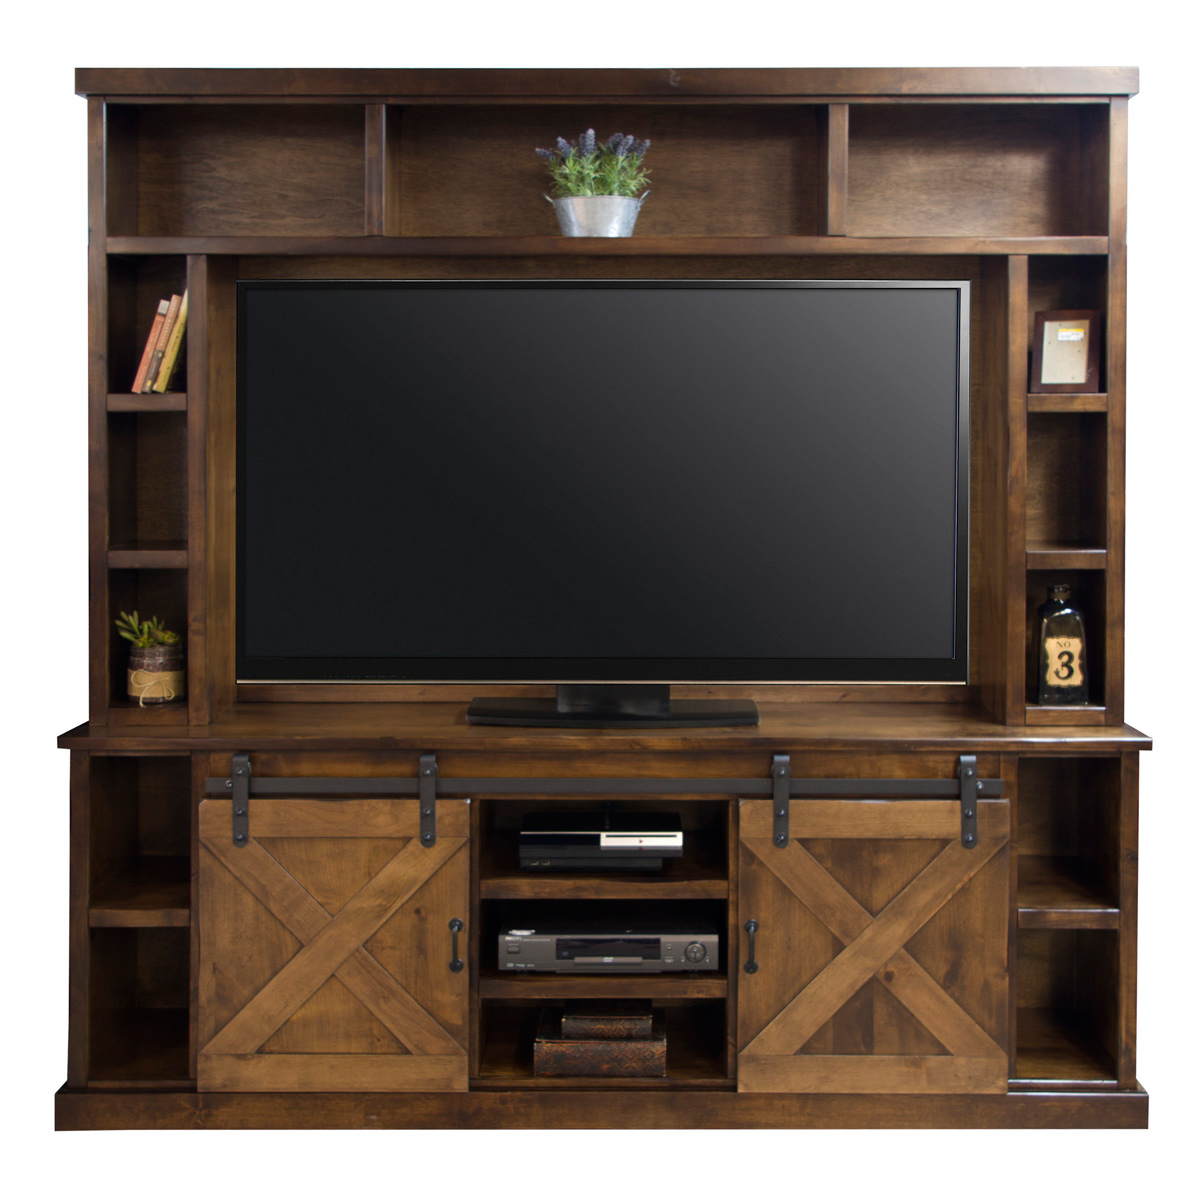 Legends Furniture Fh1415 1915 Farmhouse 85 Quot Entertainment